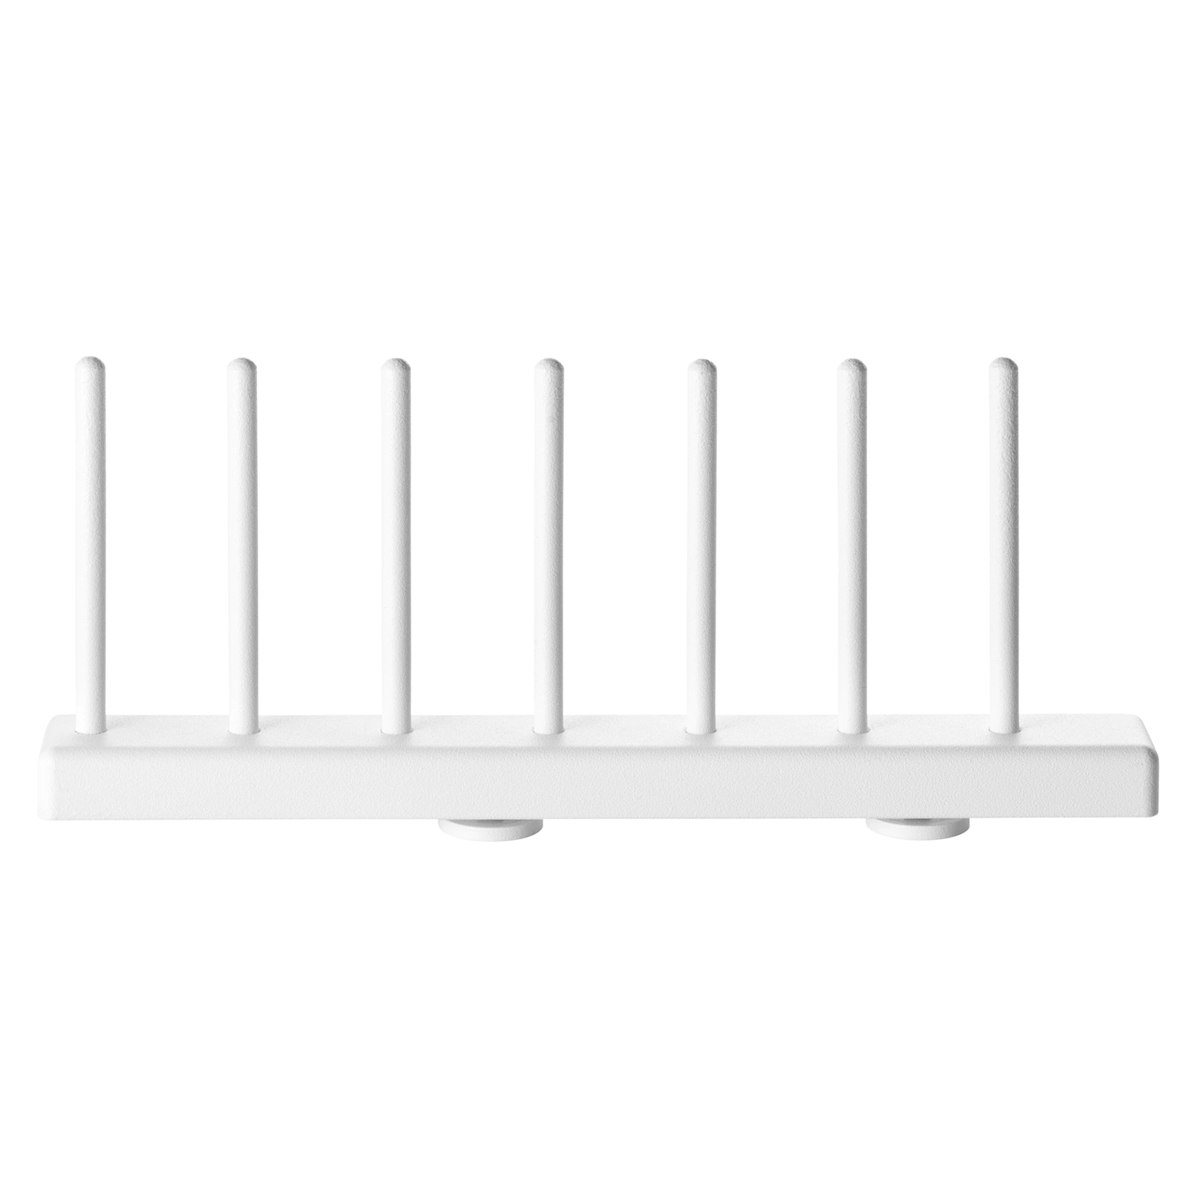 String Furniture String place rack, 20 cm, 2 pcs, white from String Furniture